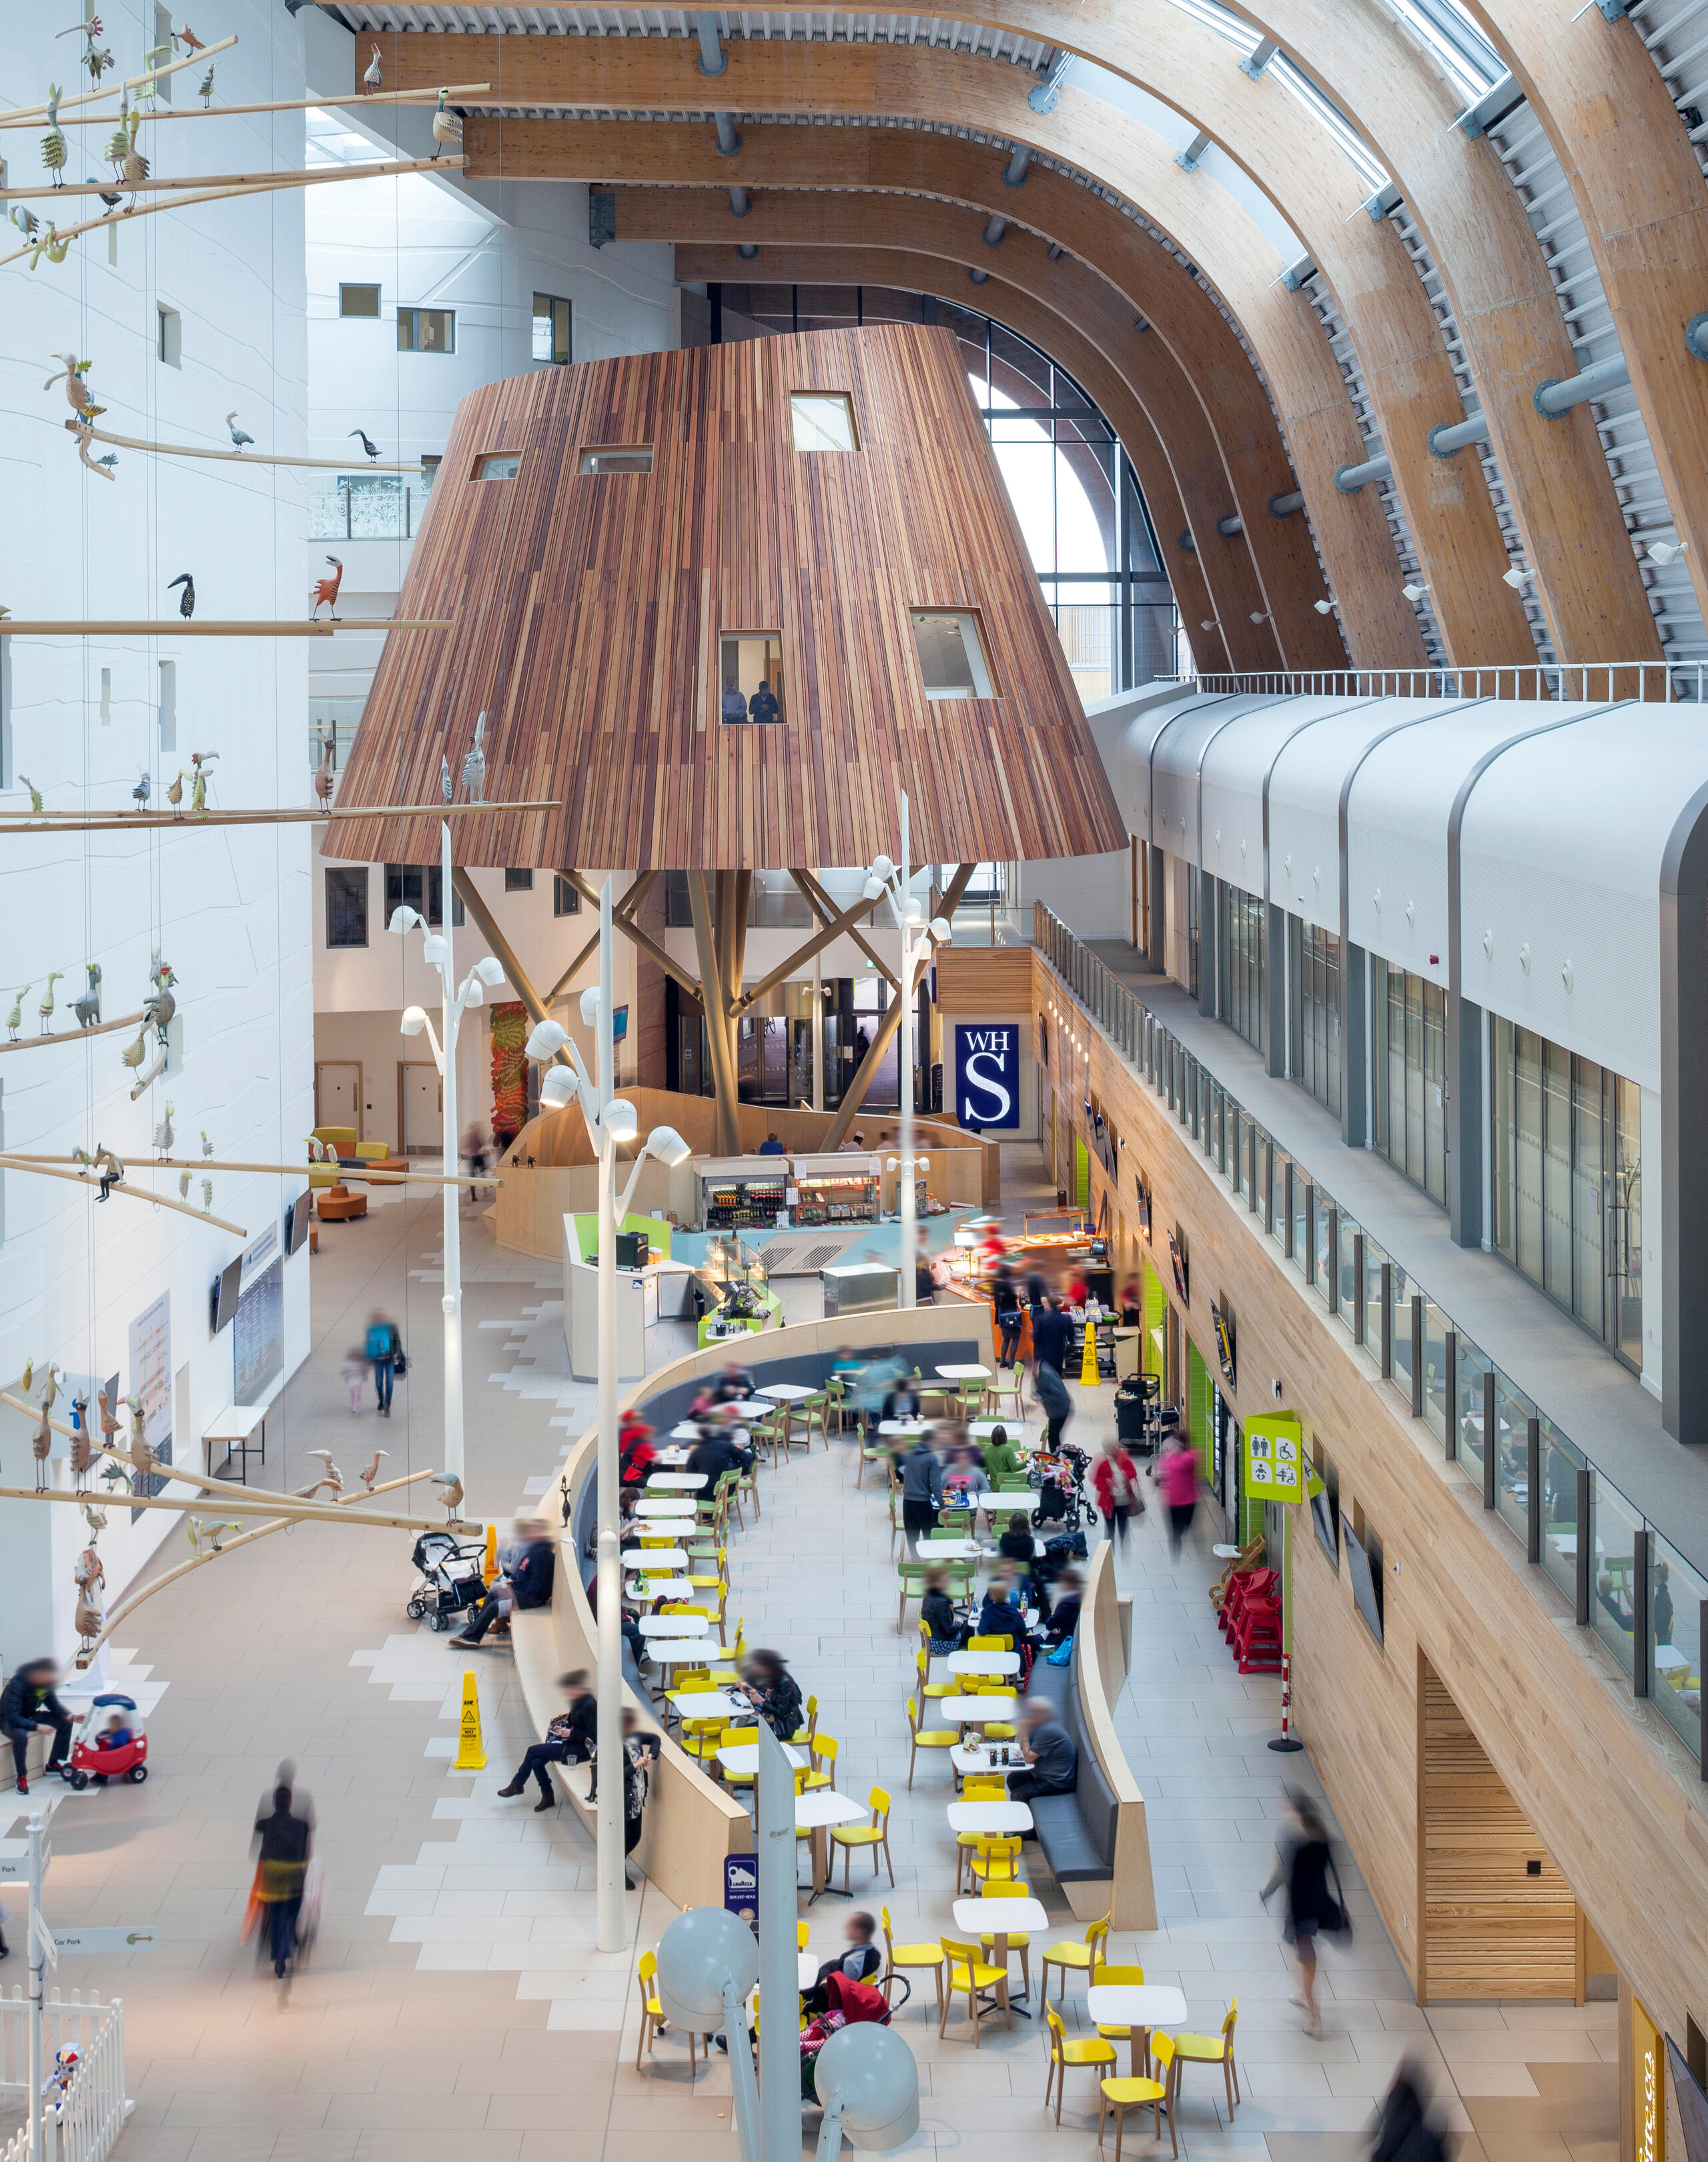 looking down at the lobby of Alder Hey Children's Health Park from a higher floor, showing cafe seating, wooden treehouse-like structure and an arched ceiling with wooden fins